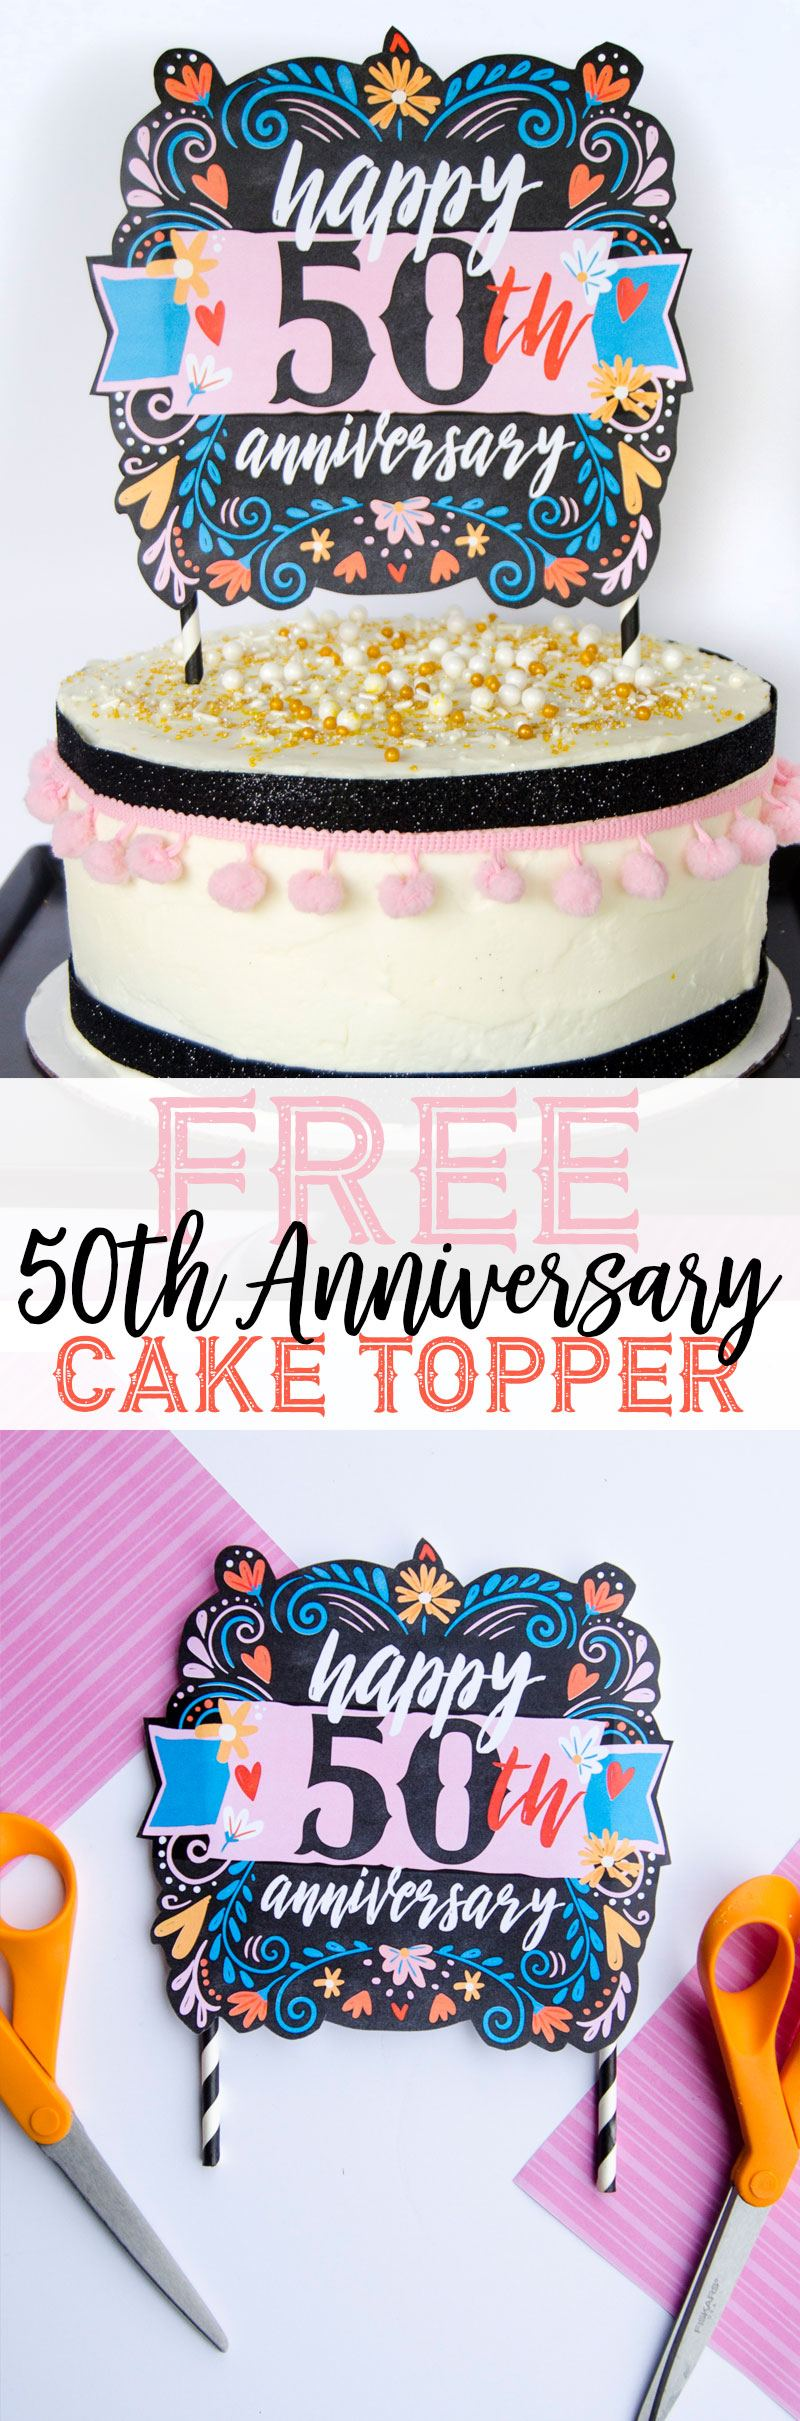 FREE Anniversary Cake Topper Printable by Lindi Haws of Love The Day